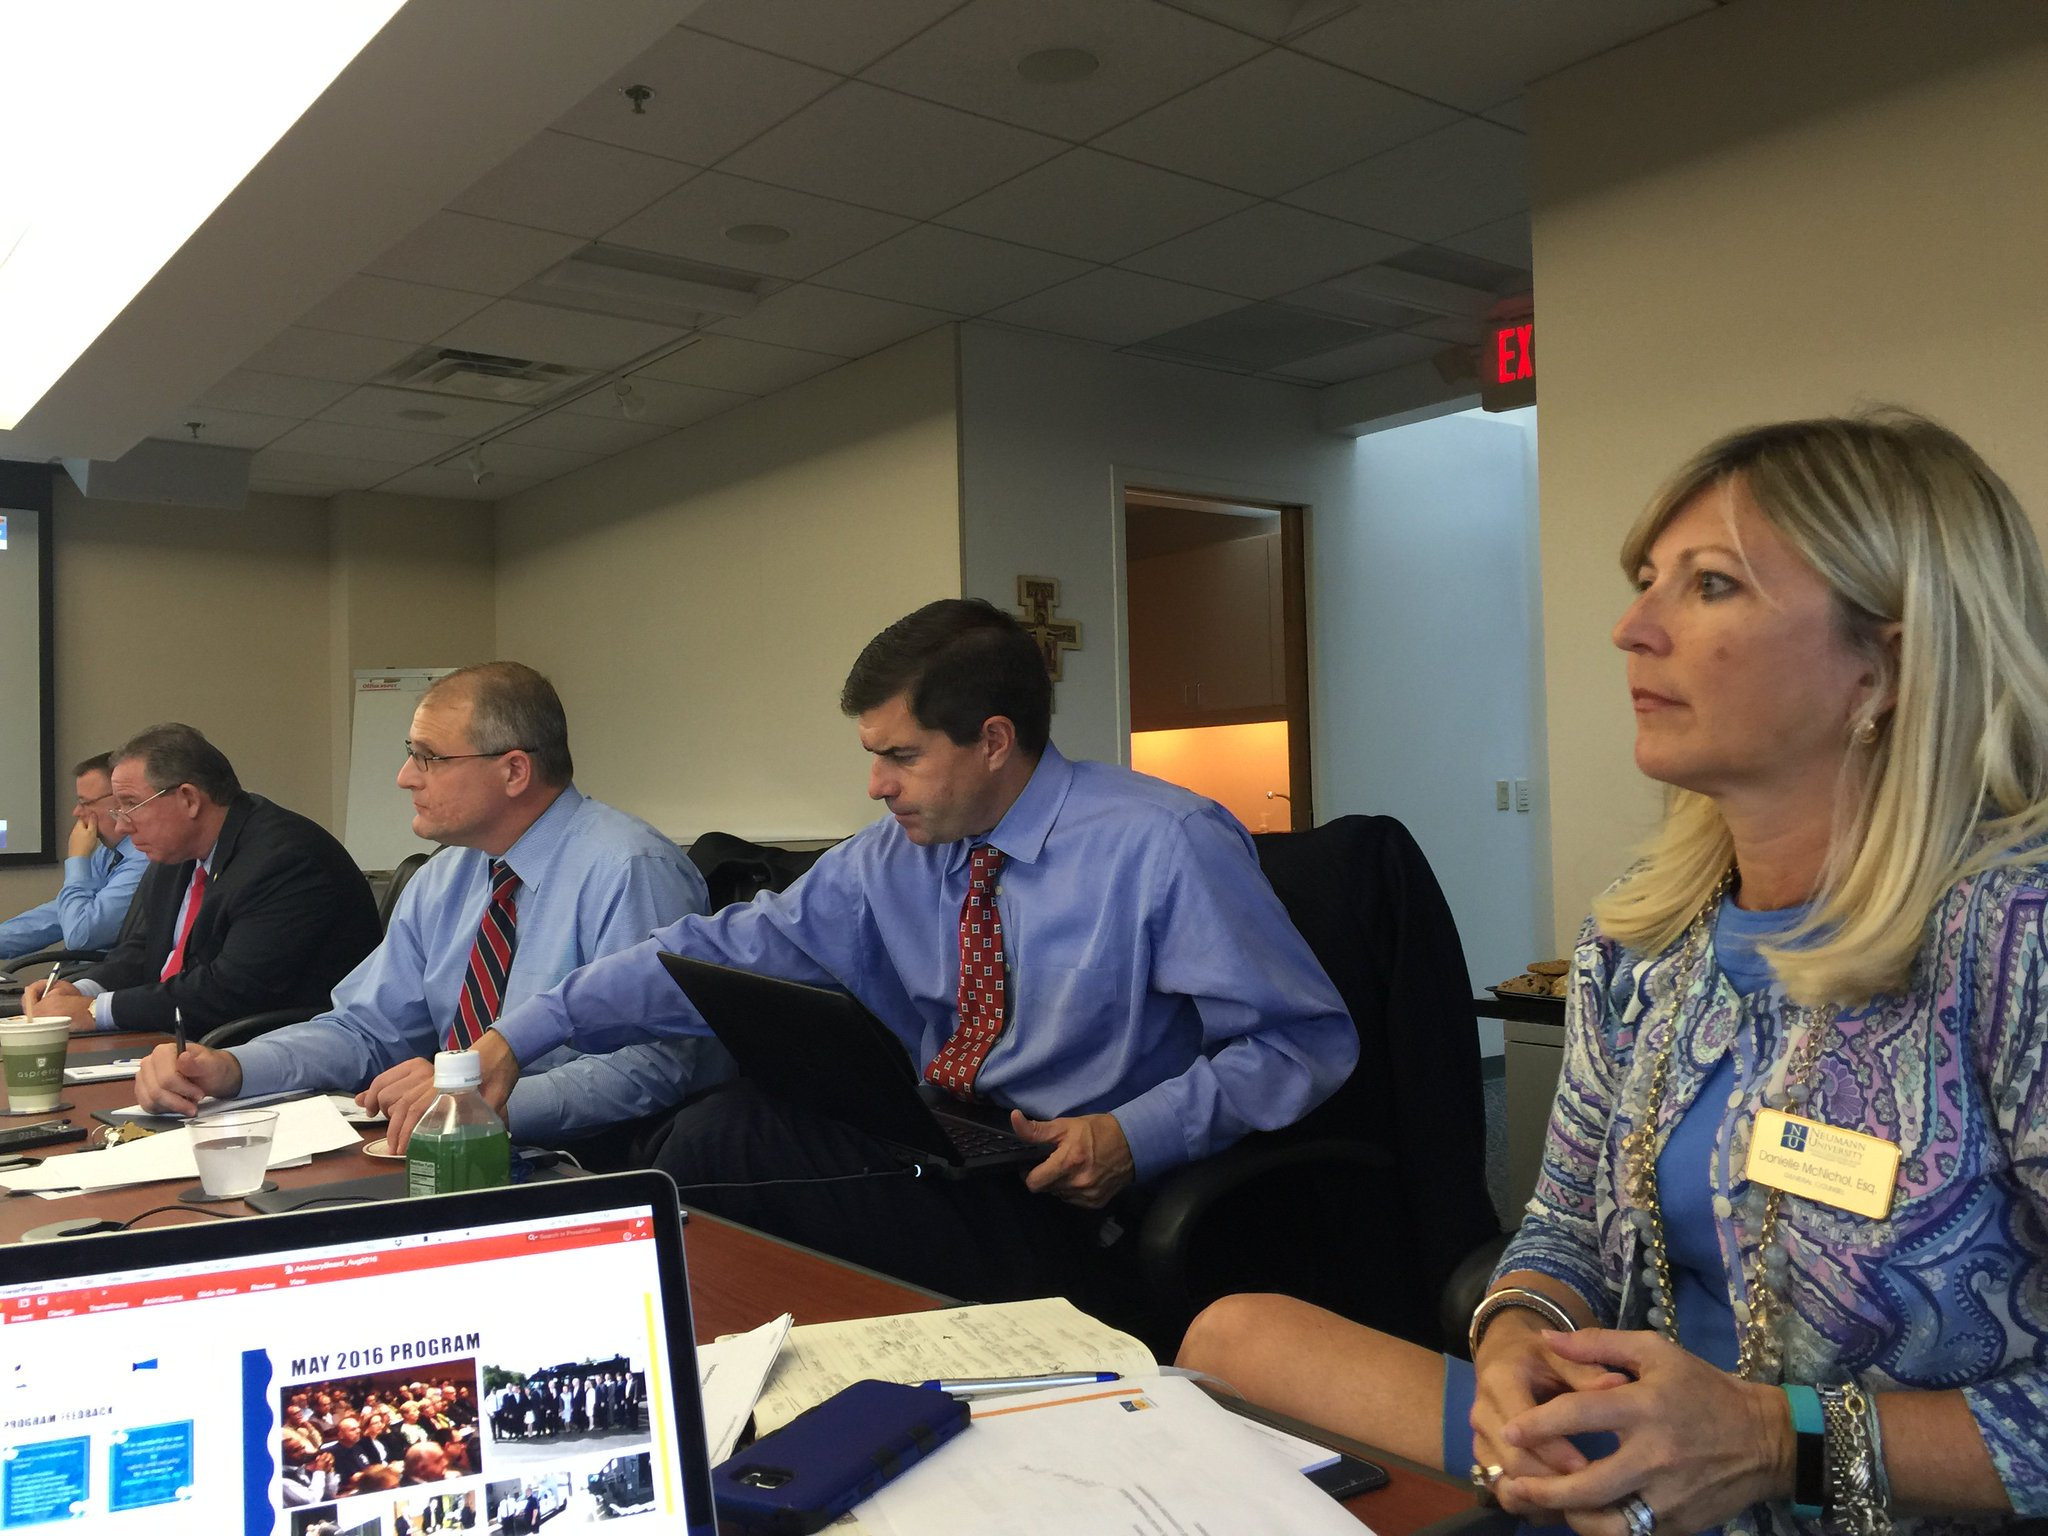 Thumbnail for Advisory Board Meeting - August 30, 2016